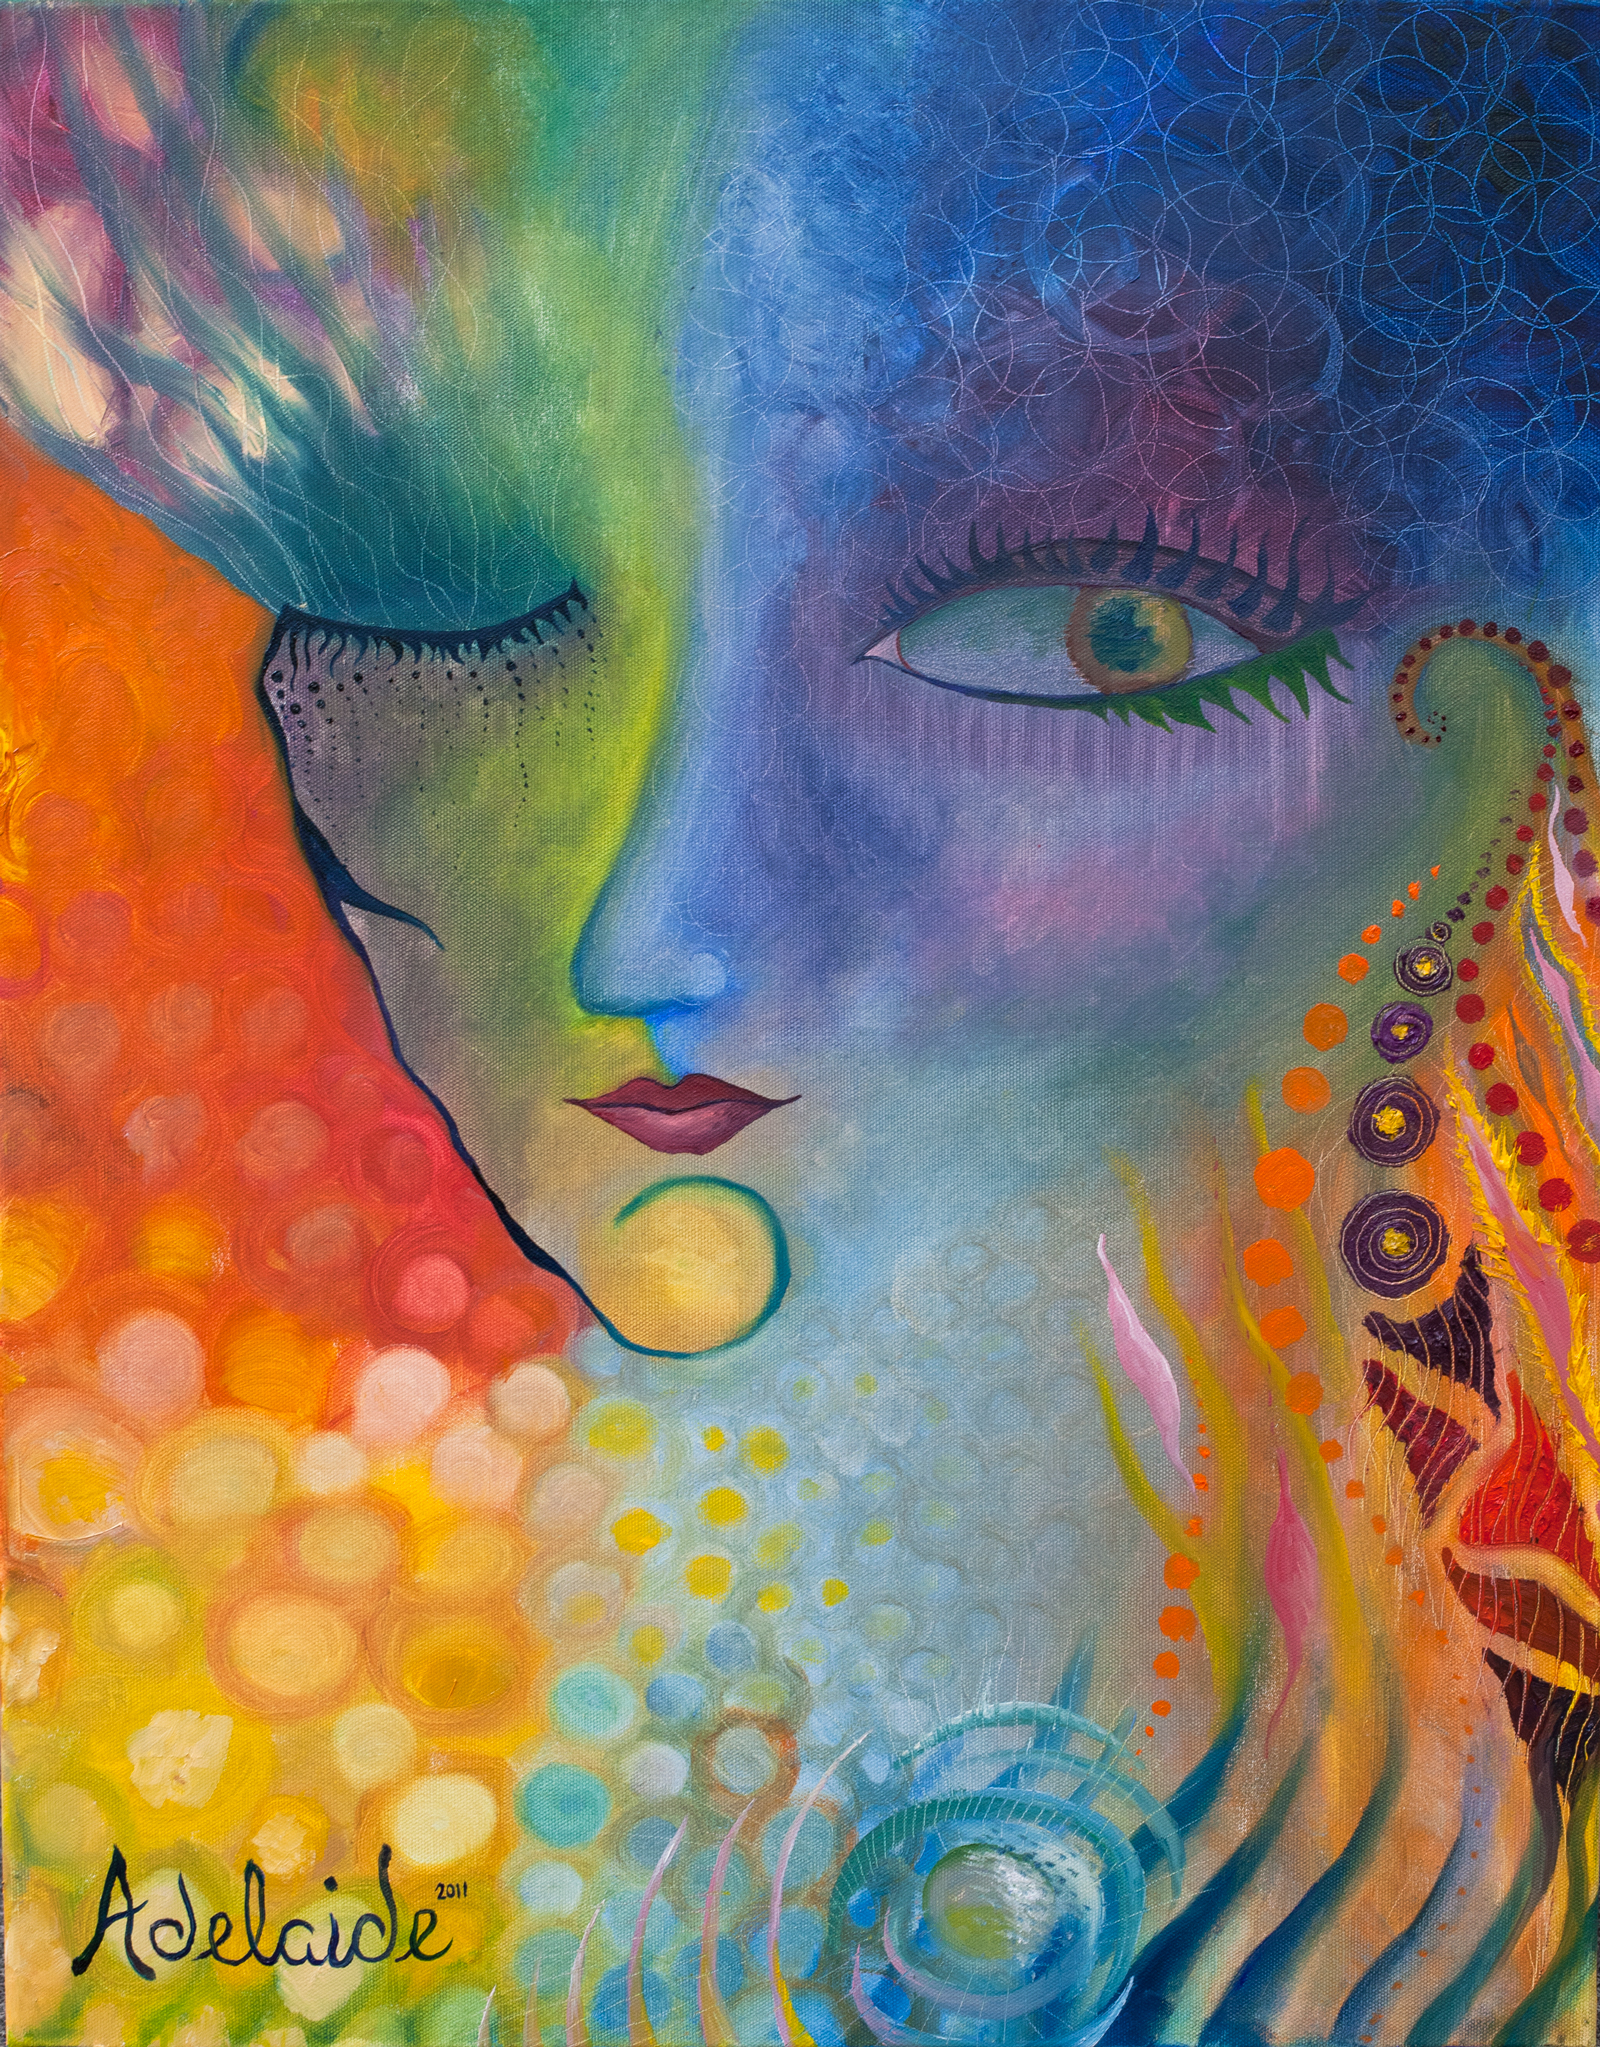 Art By Adelaide -- Adelaide Marcus- Visionary Artist